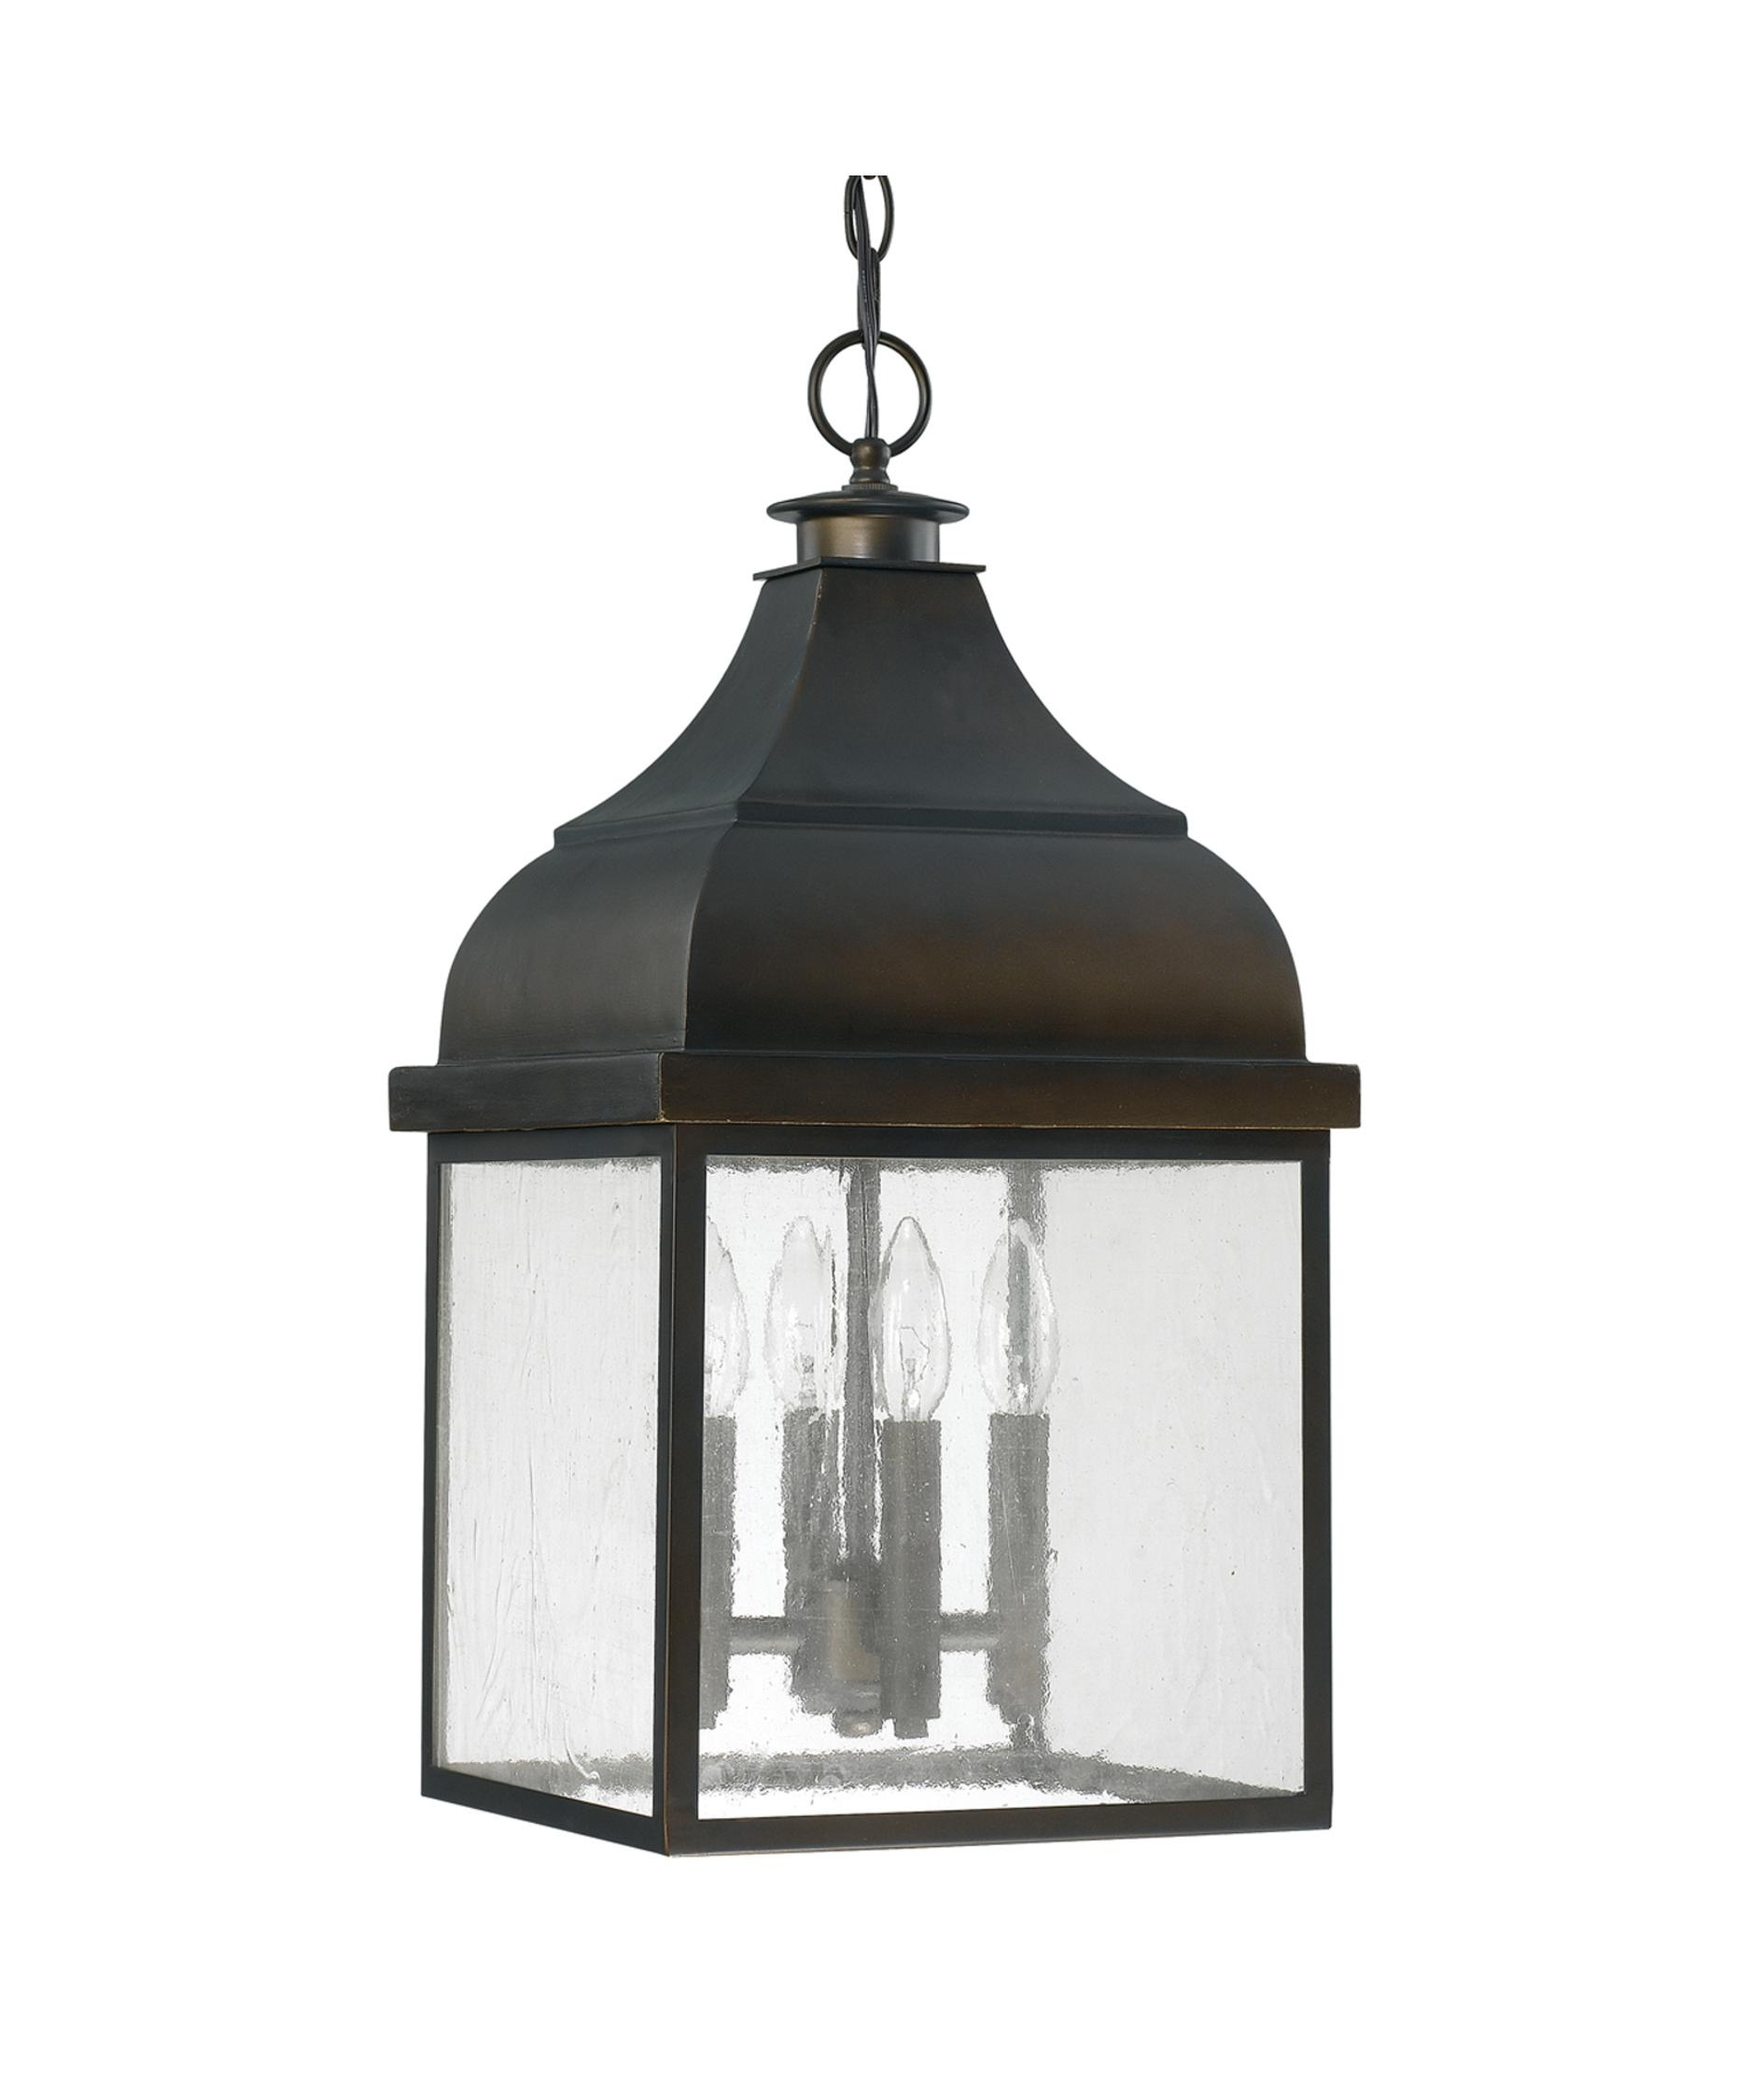 Outdoor Ceiling Lights: Hanging, Flush Mount Lights Regarding Outdoor Hanging Lanterns With Stand (View 8 of 15)